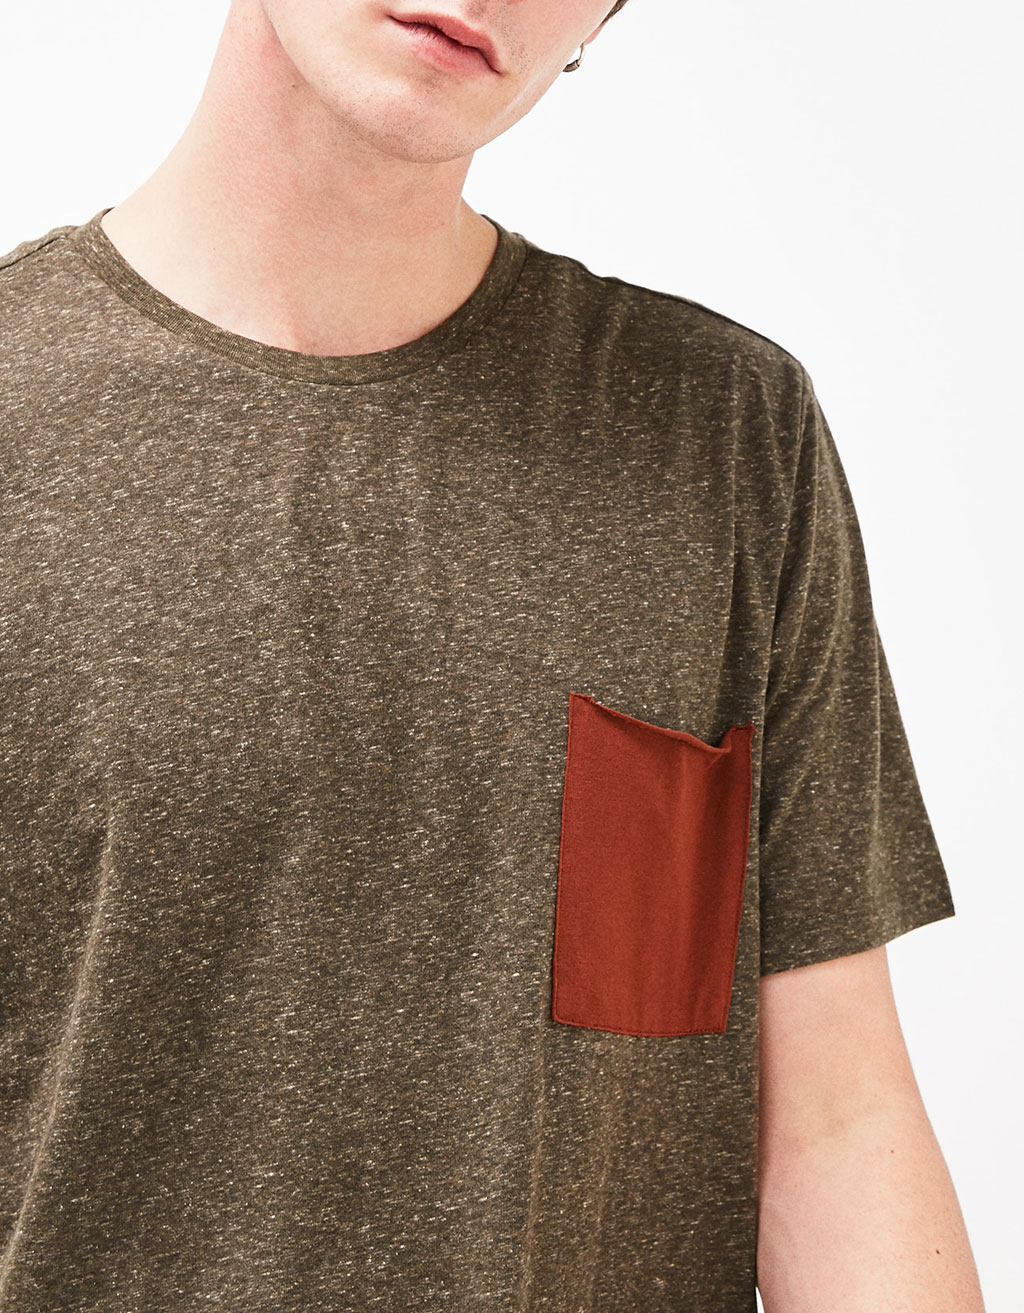 Double layered T-shirt with contrast pocket